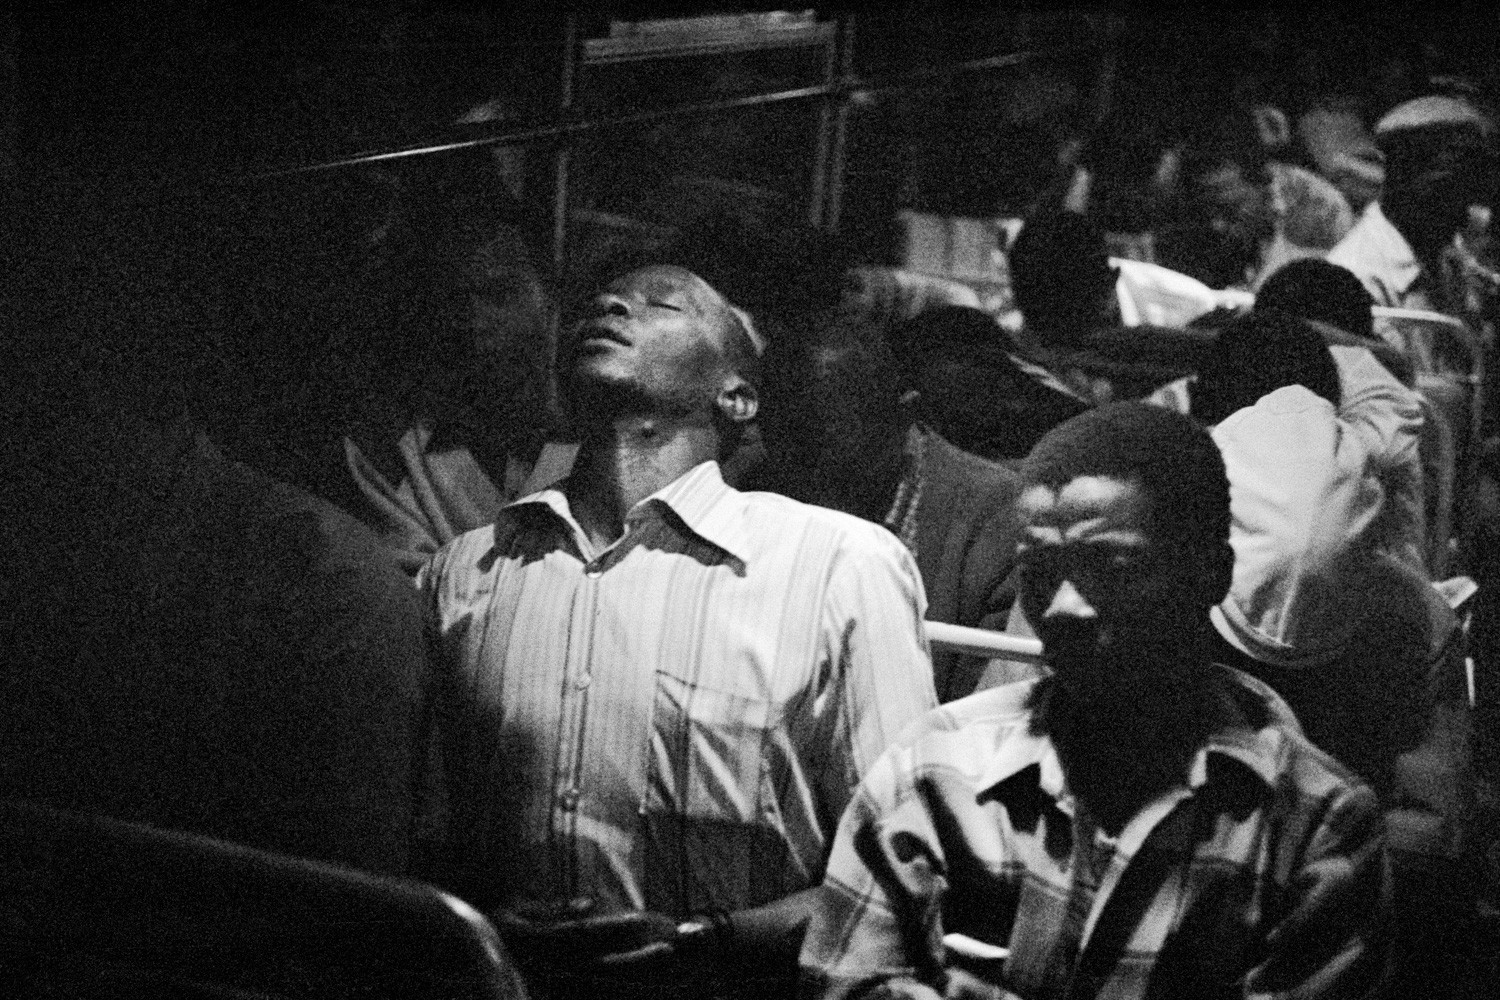 David Goldblatt, 9:00 pm. Going home: Marabastad-Waterval bus: For most of the people in this bus the cycle will start again tomorrow at between 2:00 and 3:00 am, 1983